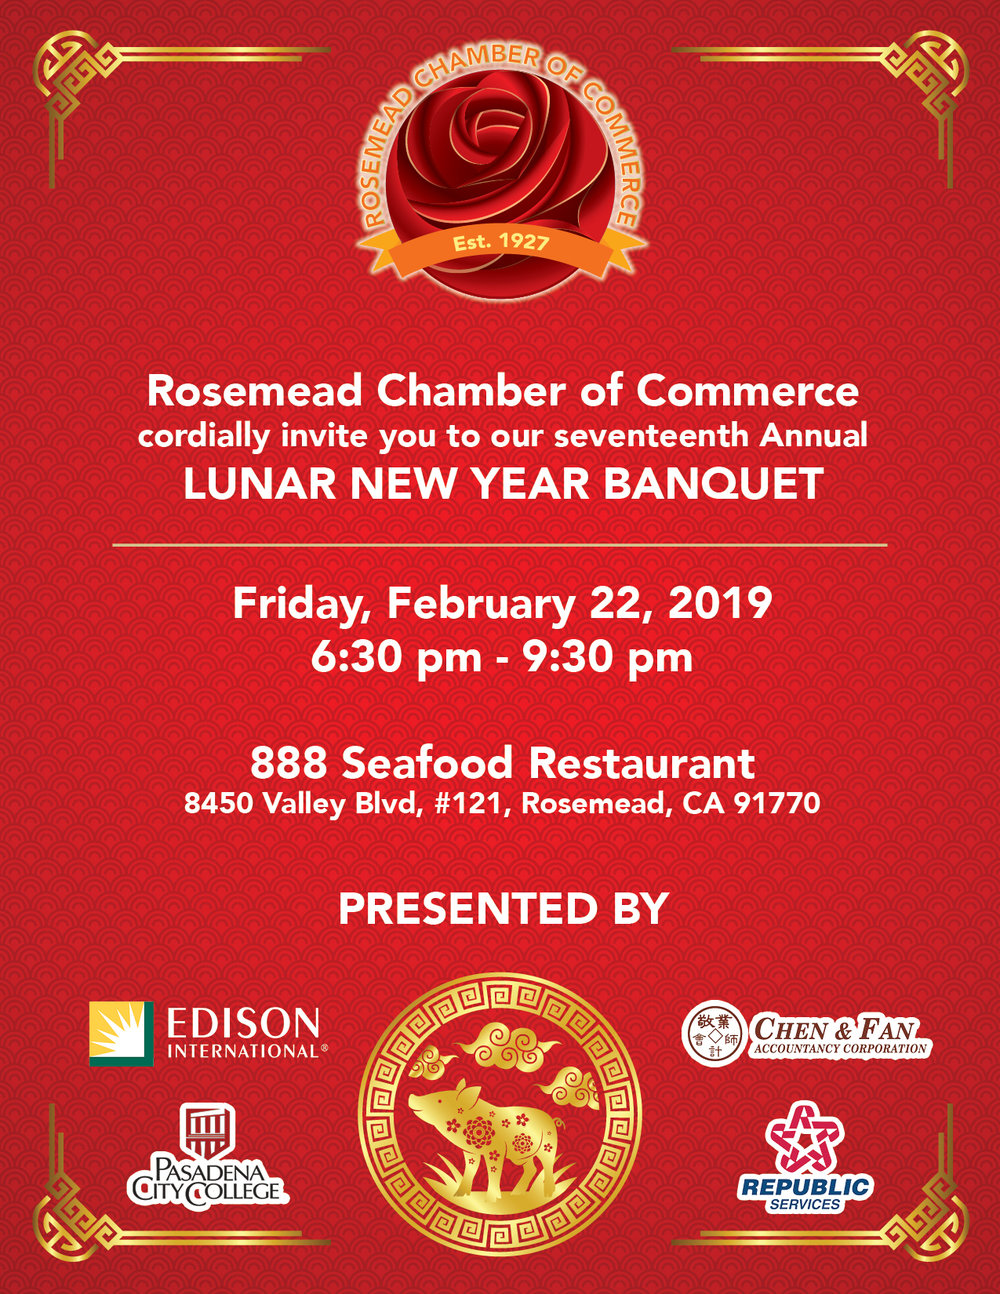 17th annual lunar new year banquet - February 22nd, 2019